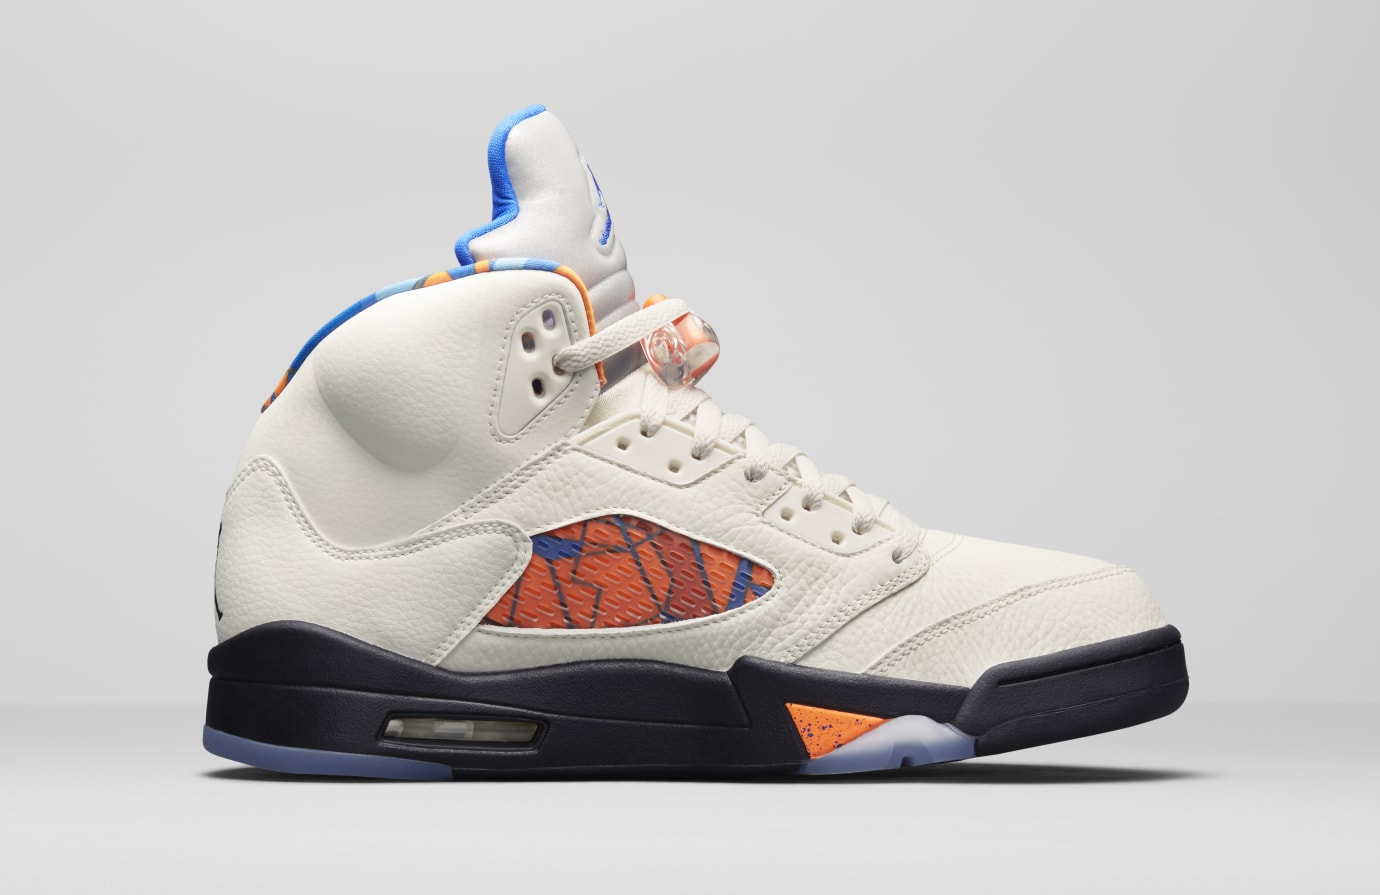 a9d2849d8e8e Air Jordan 5 V Sail Orange Peel Black Hyper Royal Release Date ...